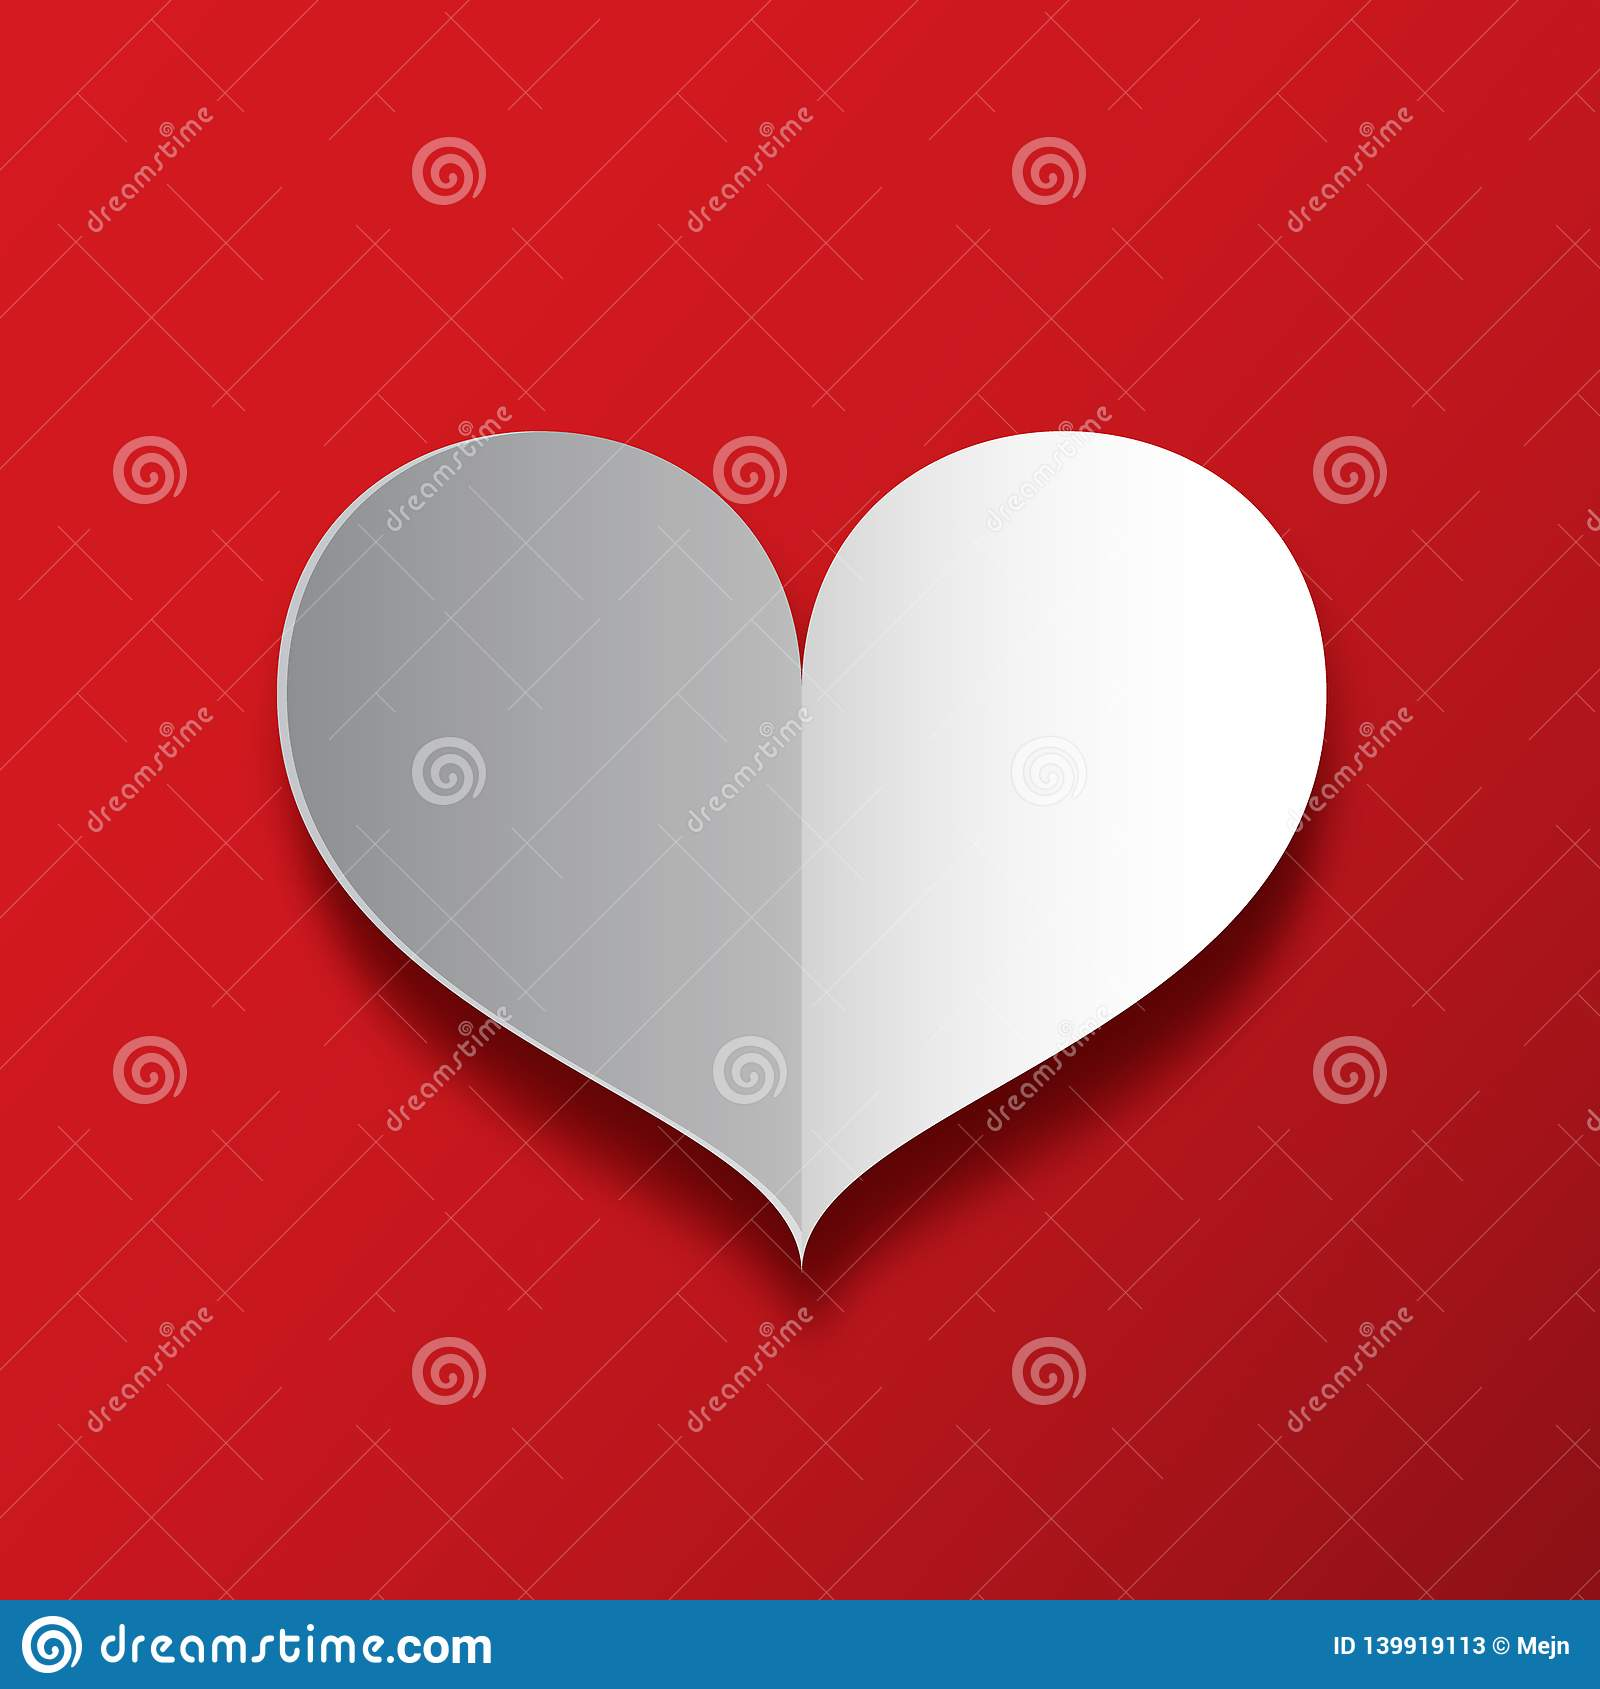 Paper Heart on Red Background.